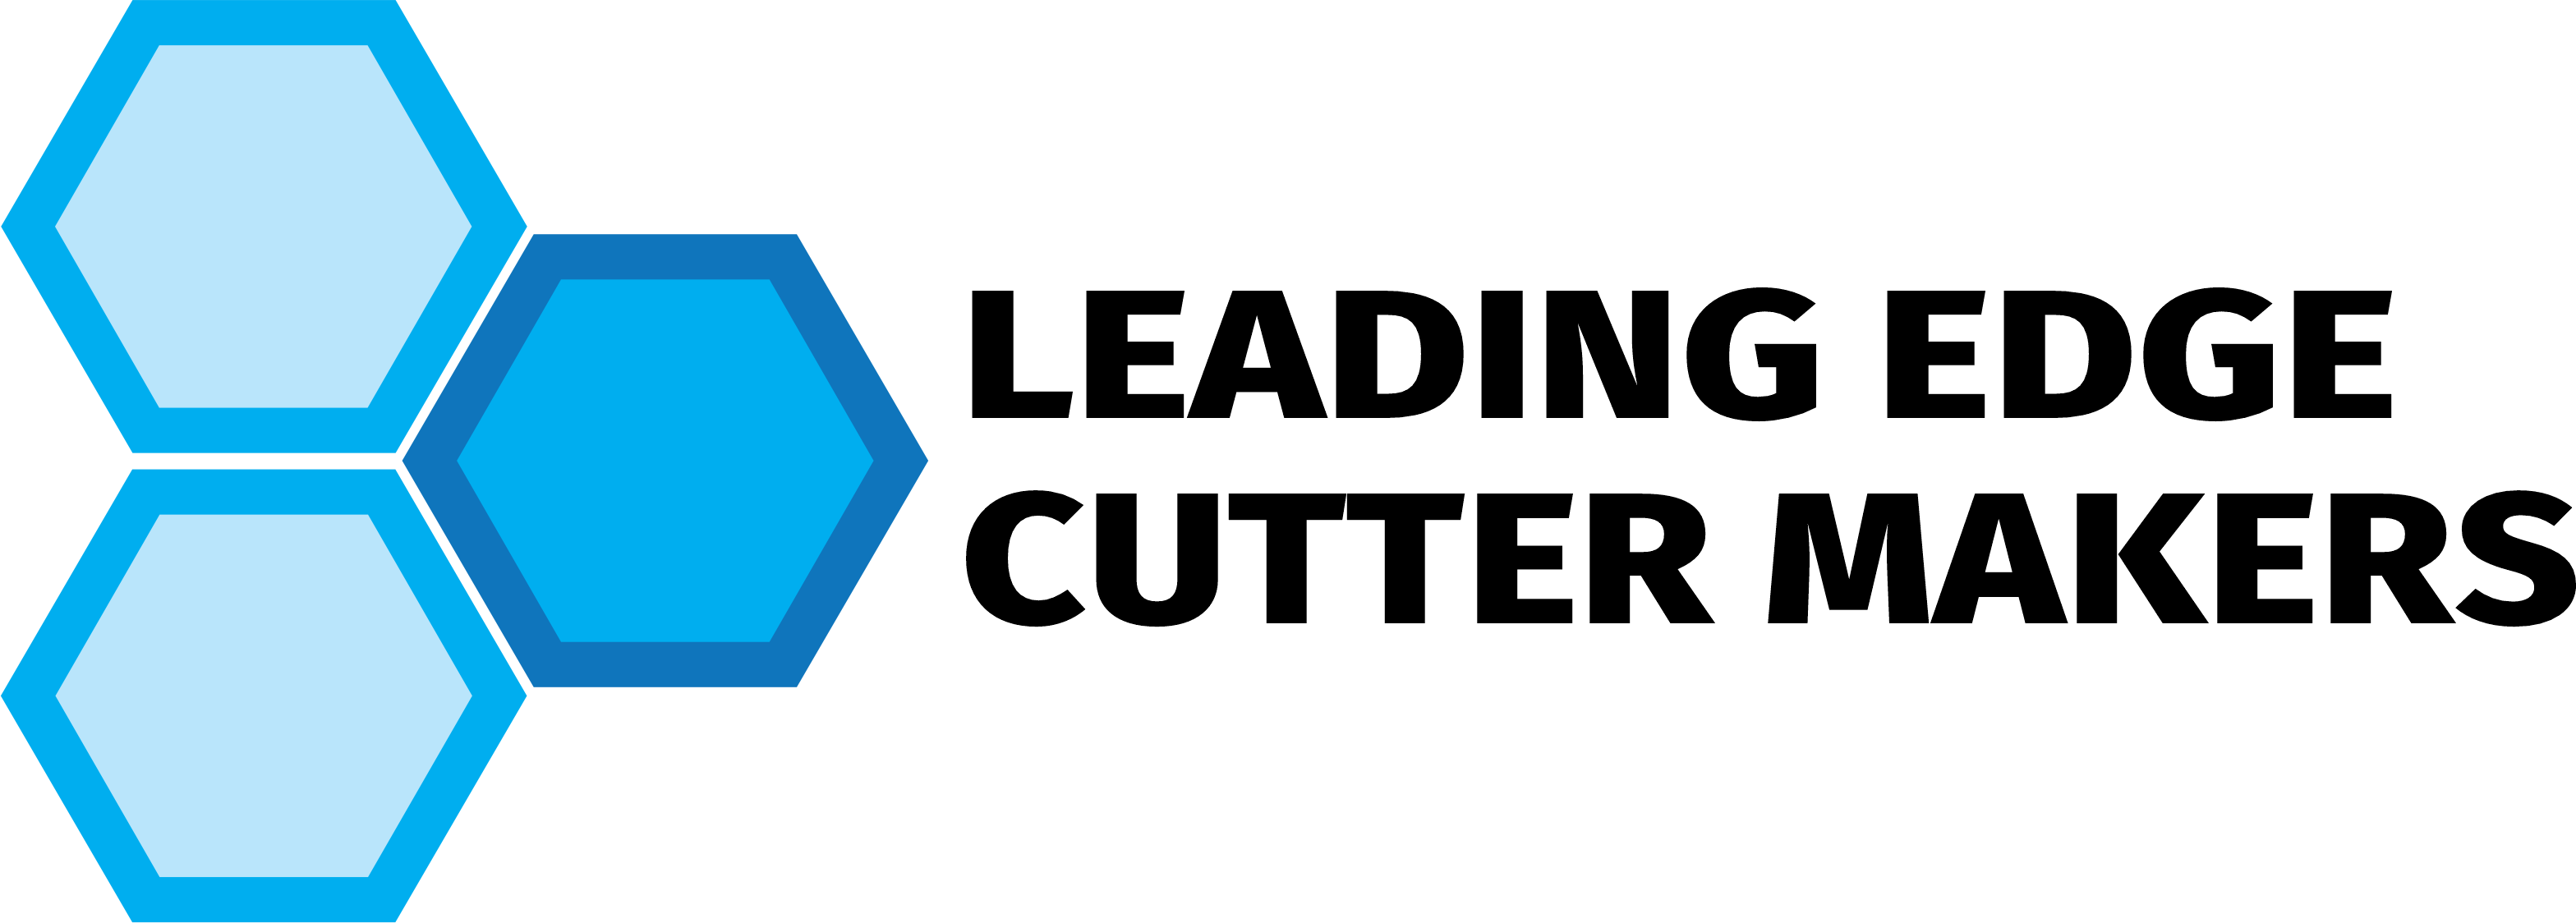 Leading Edge Cutter Makers Ltd